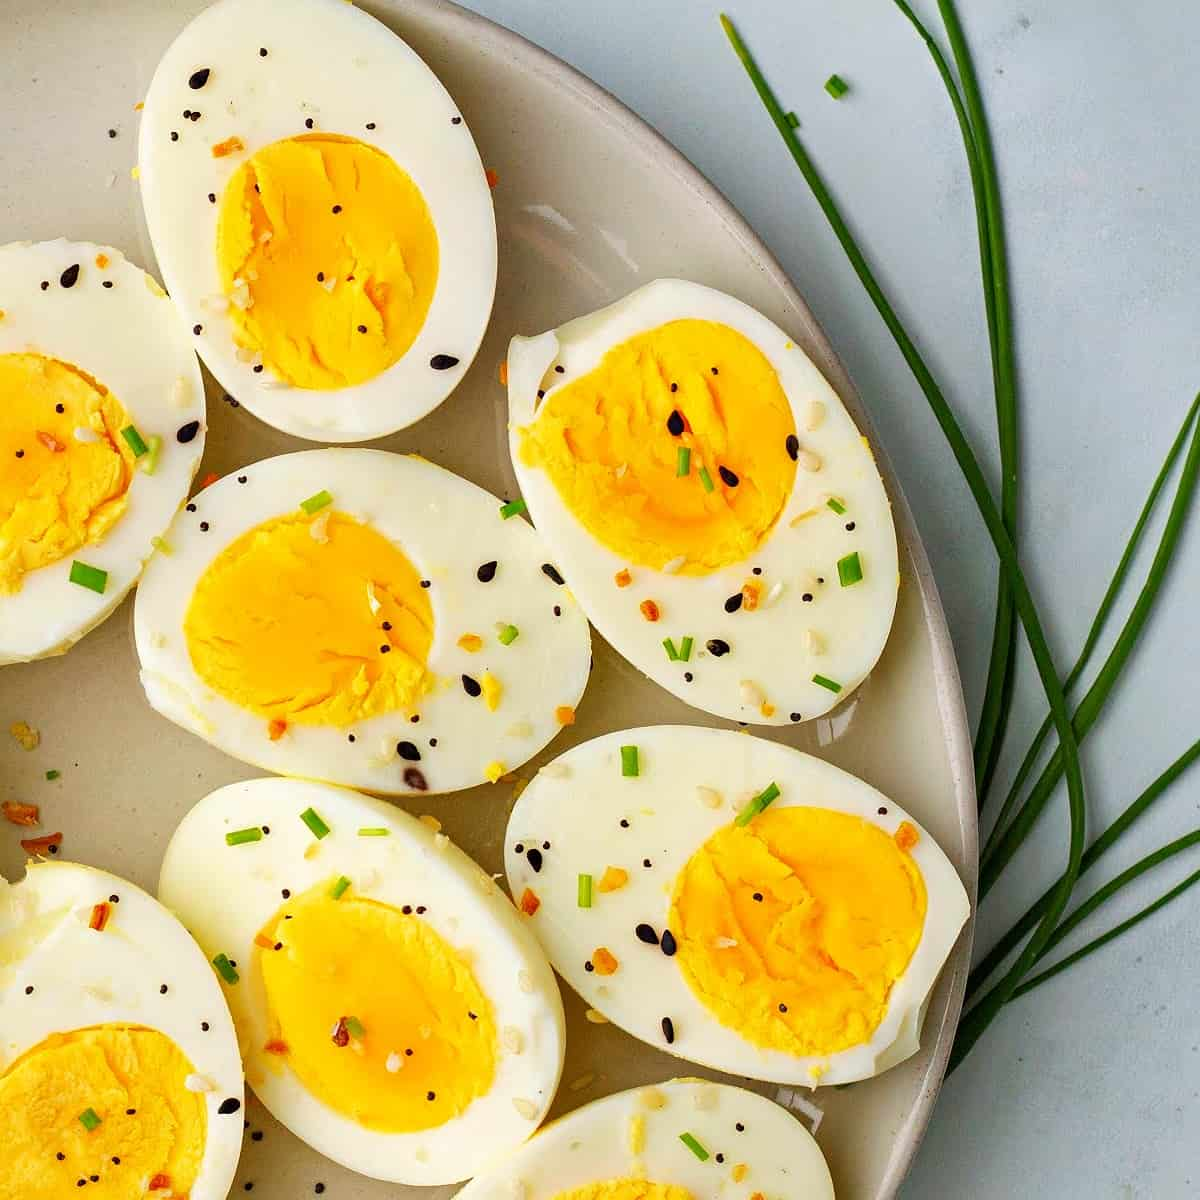 a close-up of hard boiled eggs on a plate topped with chives and everything bagel seasoning